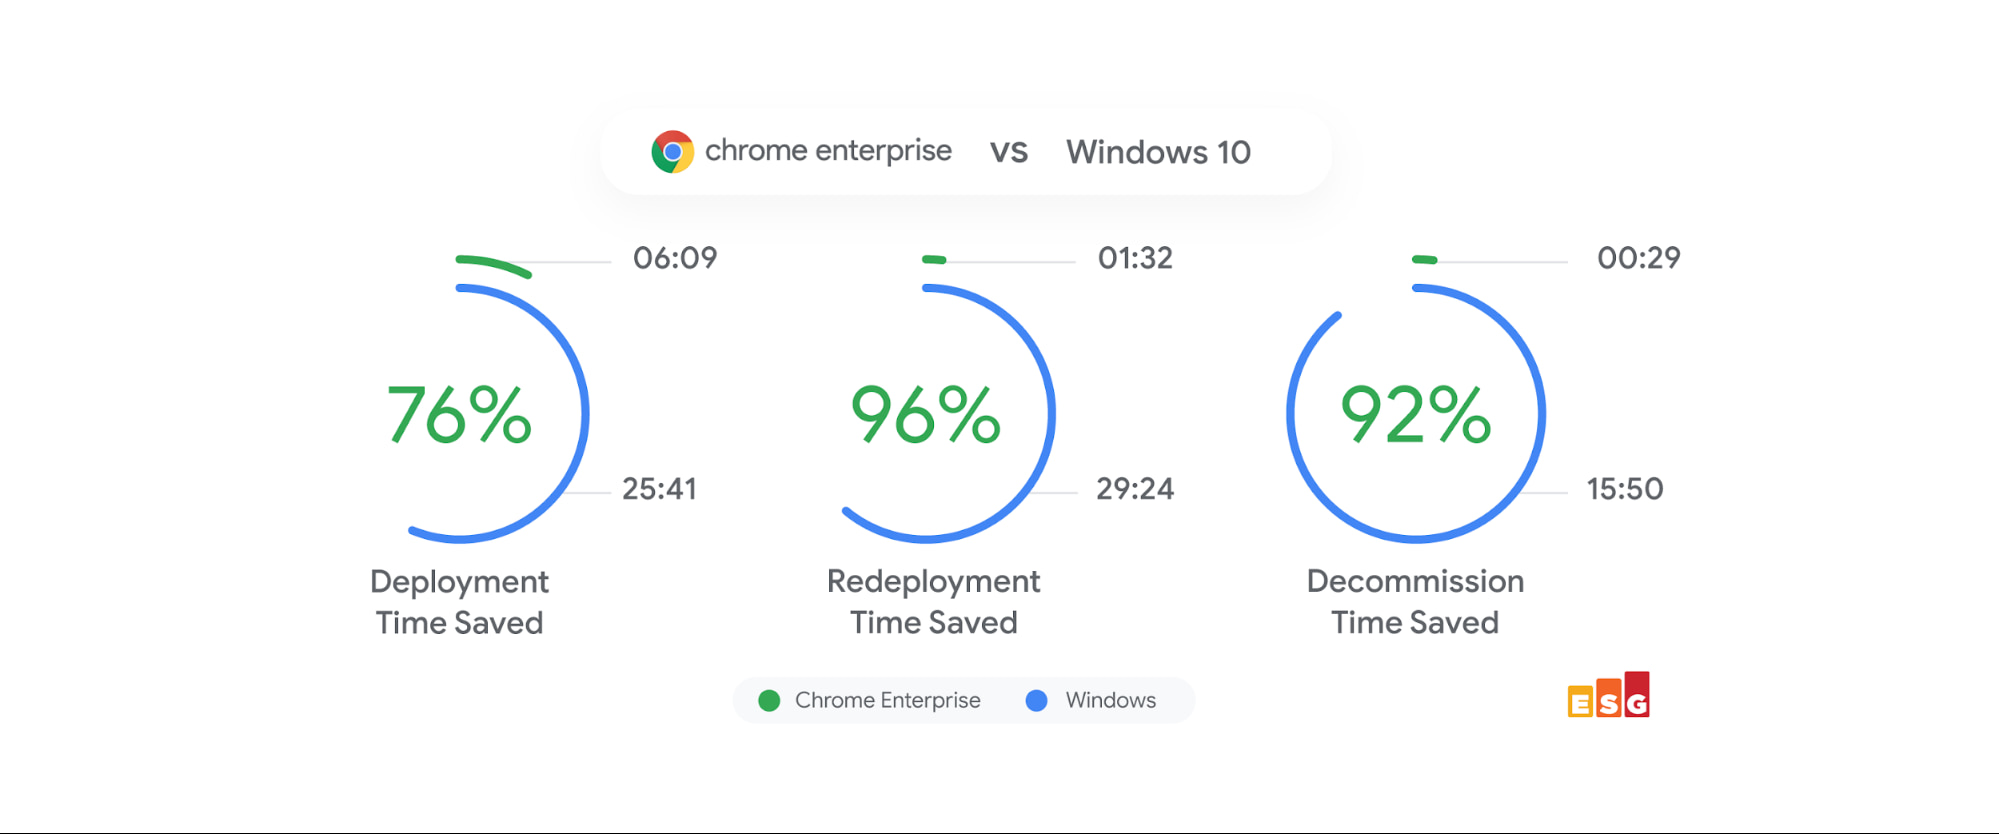 chrome enterprise vs windows 10.jpg